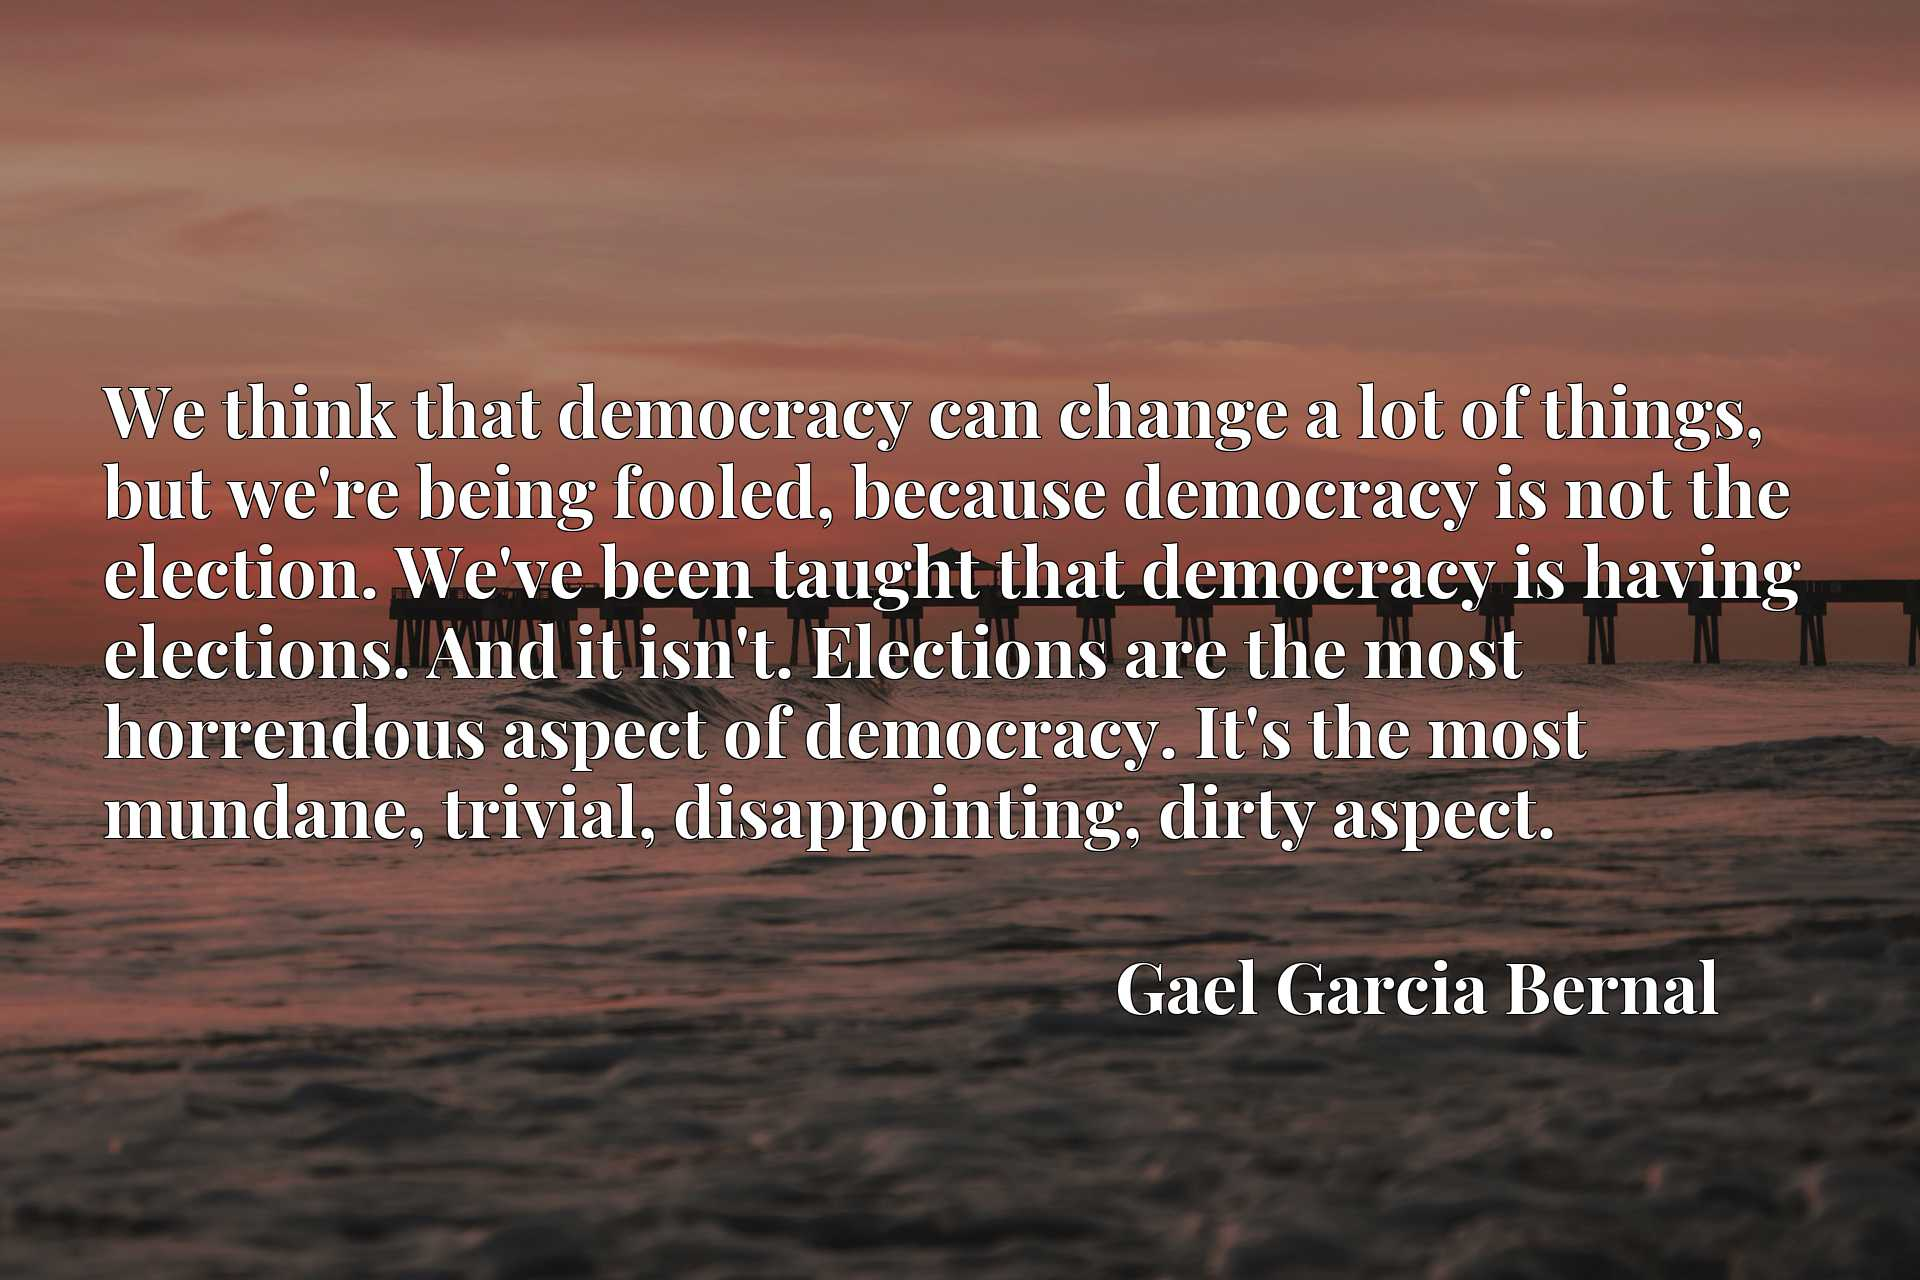 We think that democracy can change a lot of things, but we're being fooled, because democracy is not the election. We've been taught that democracy is having elections. And it isn't. Elections are the most horrendous aspect of democracy. It's the most mundane, trivial, disappointing, dirty aspect.